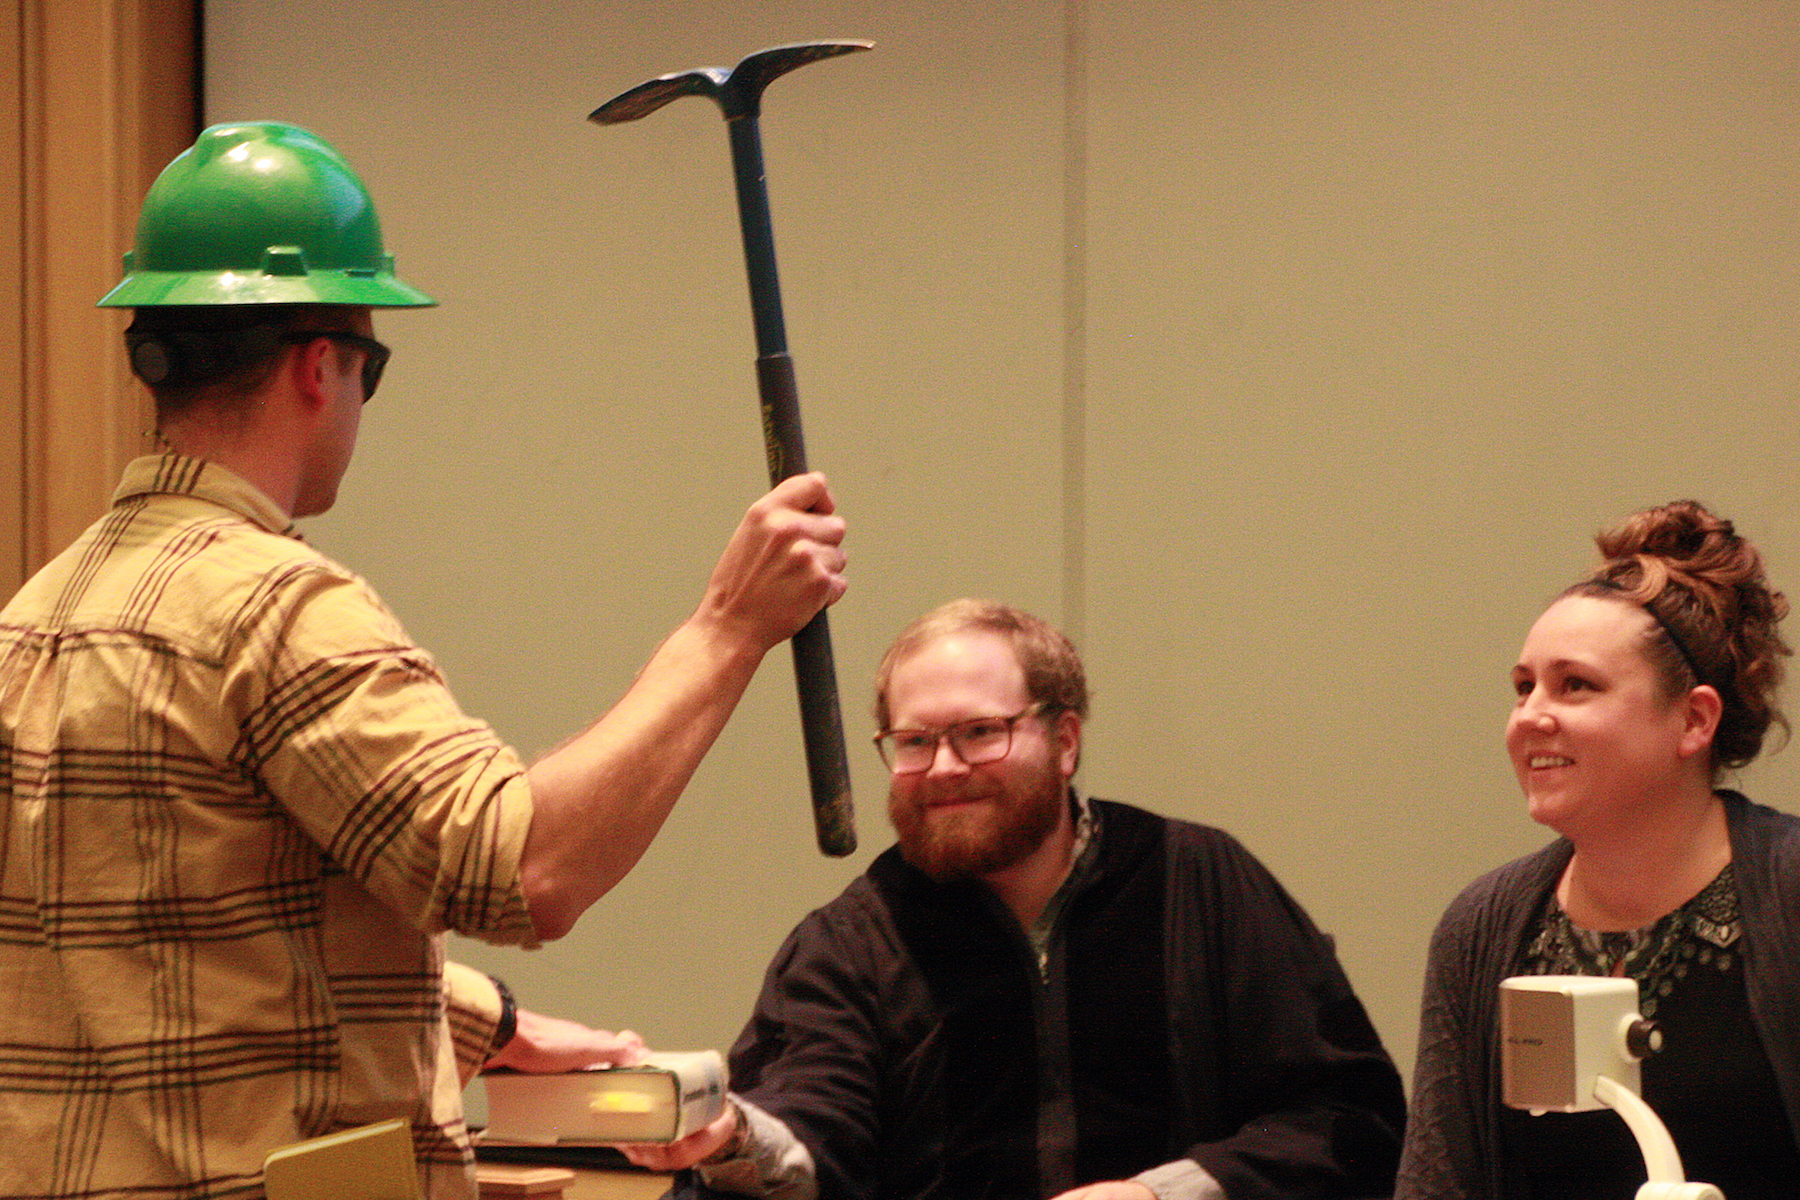 A man wearing a hard hat has his hand on a book and holds a pick-axe while two others look on.